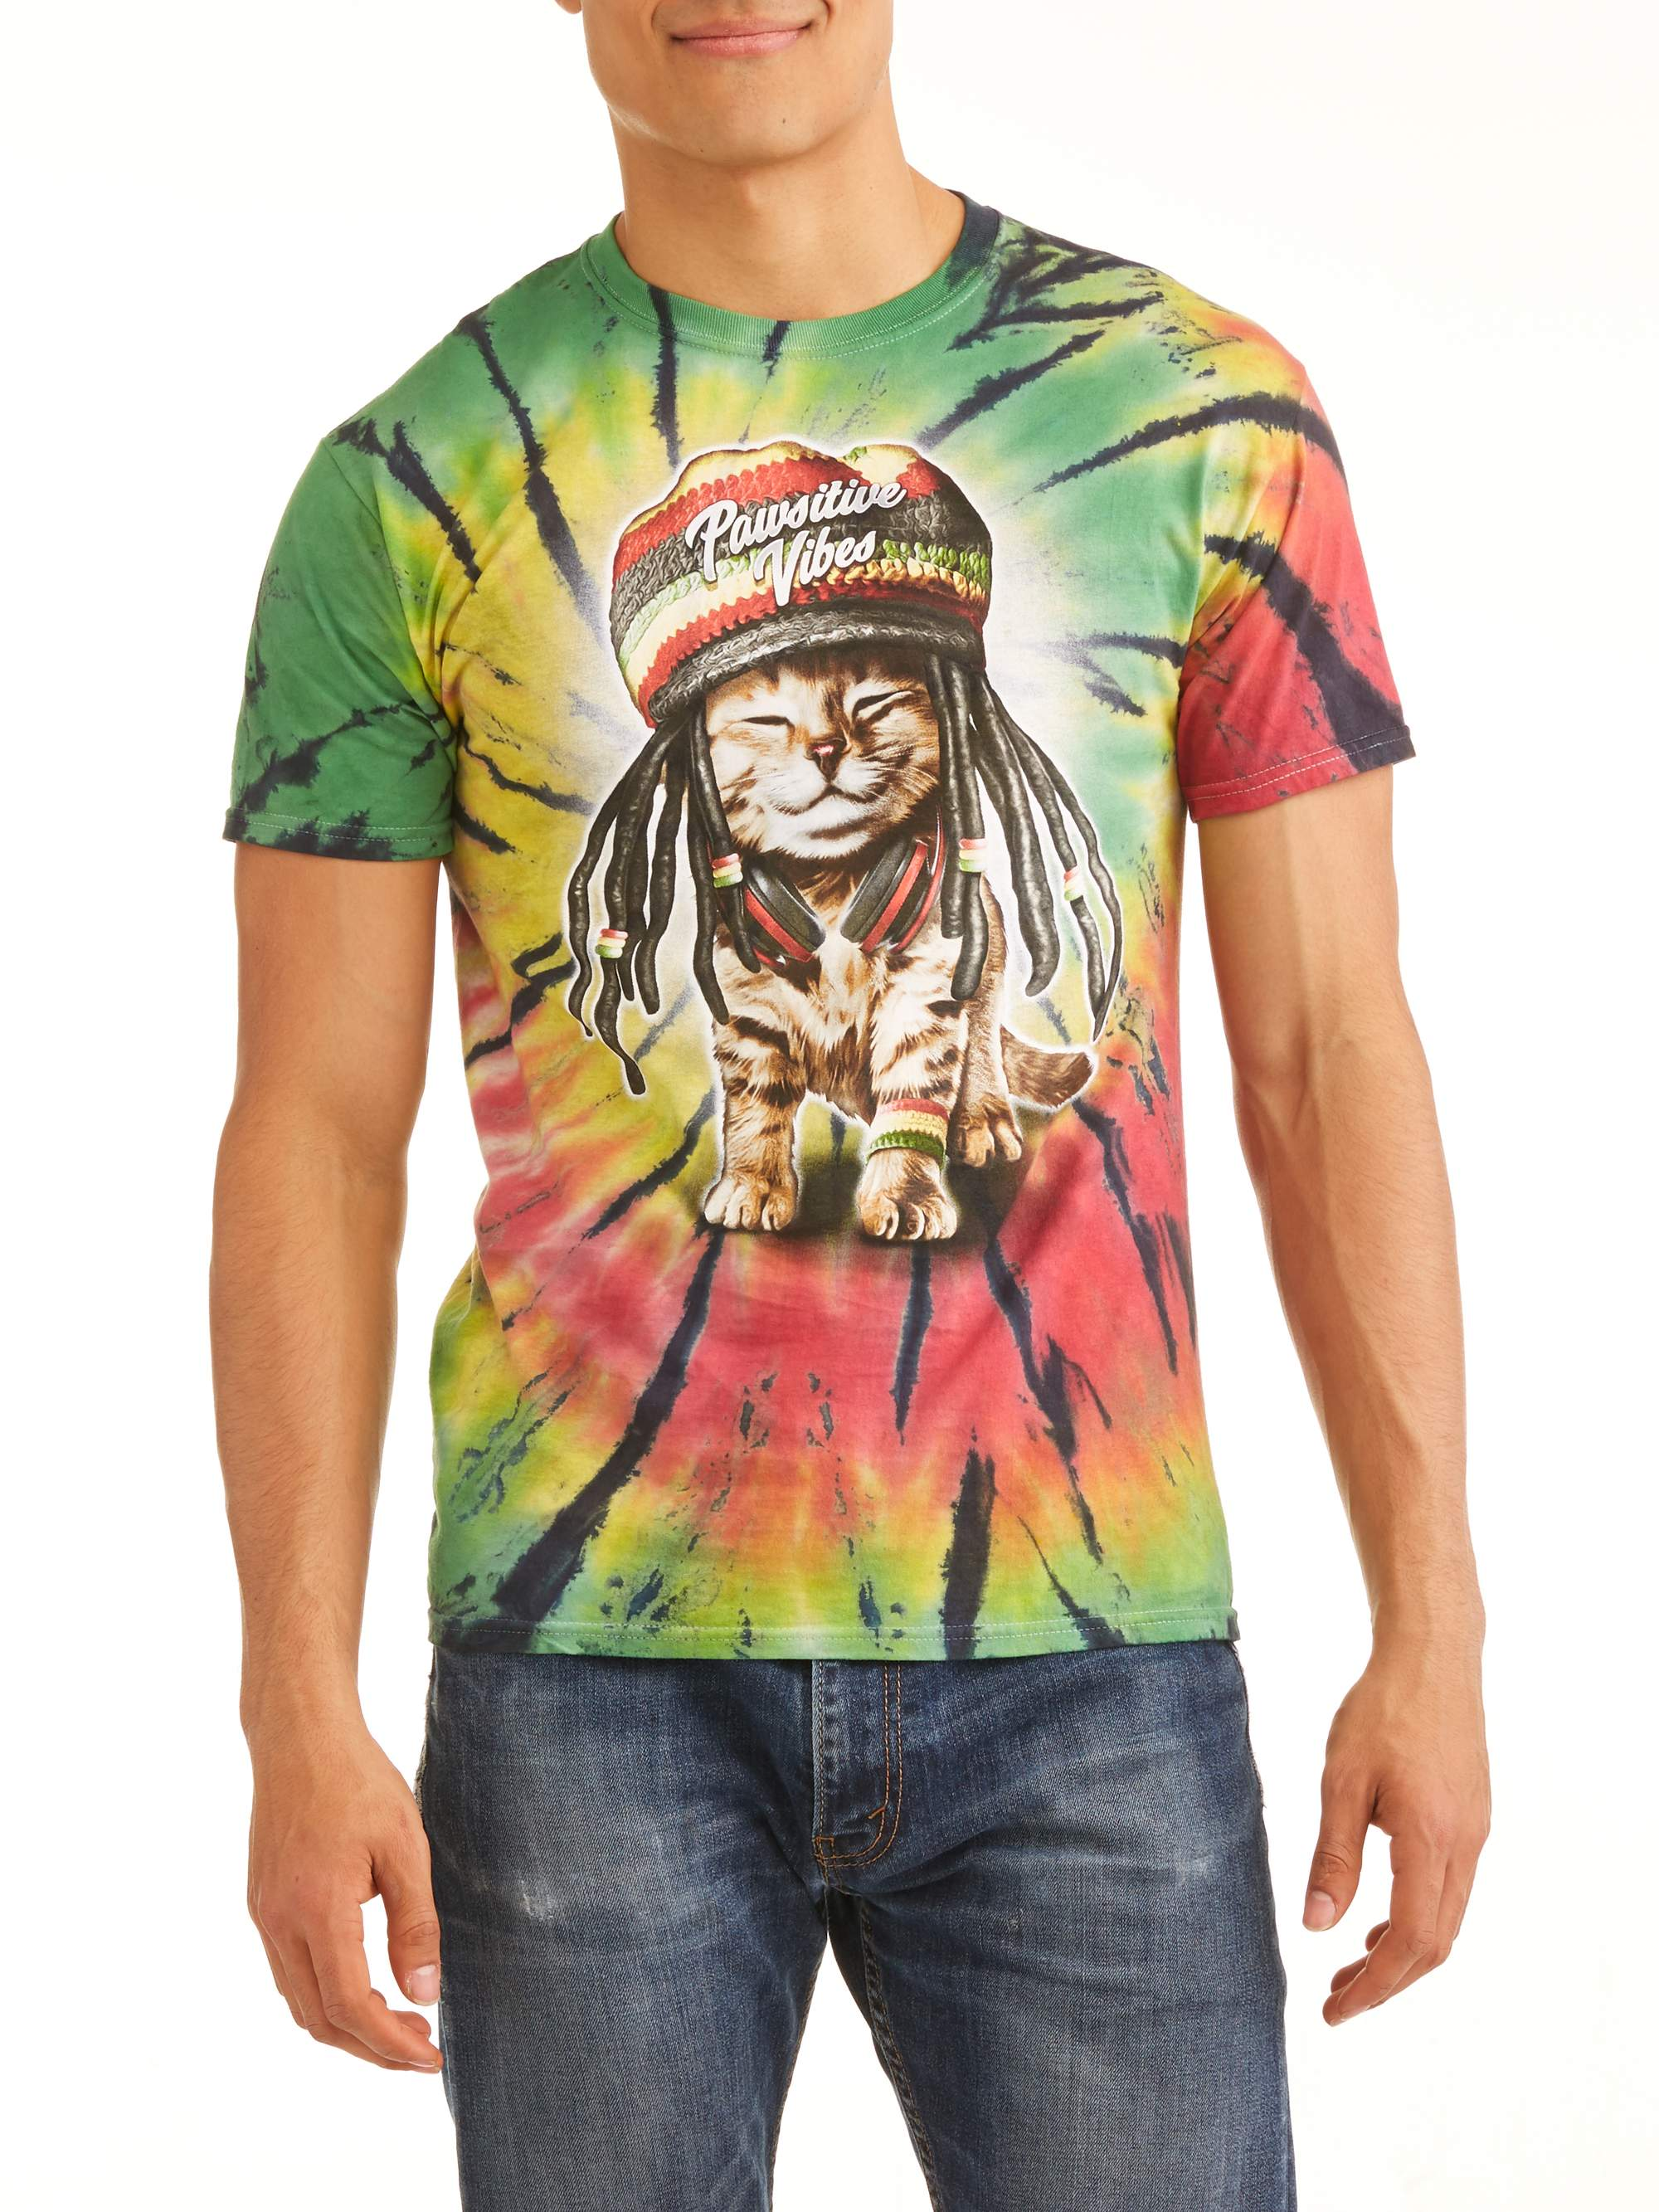 Men's Pawsitive Vibes Rasta Cat Short Sleeve Graphic T-Shirt, up to Size 3XL